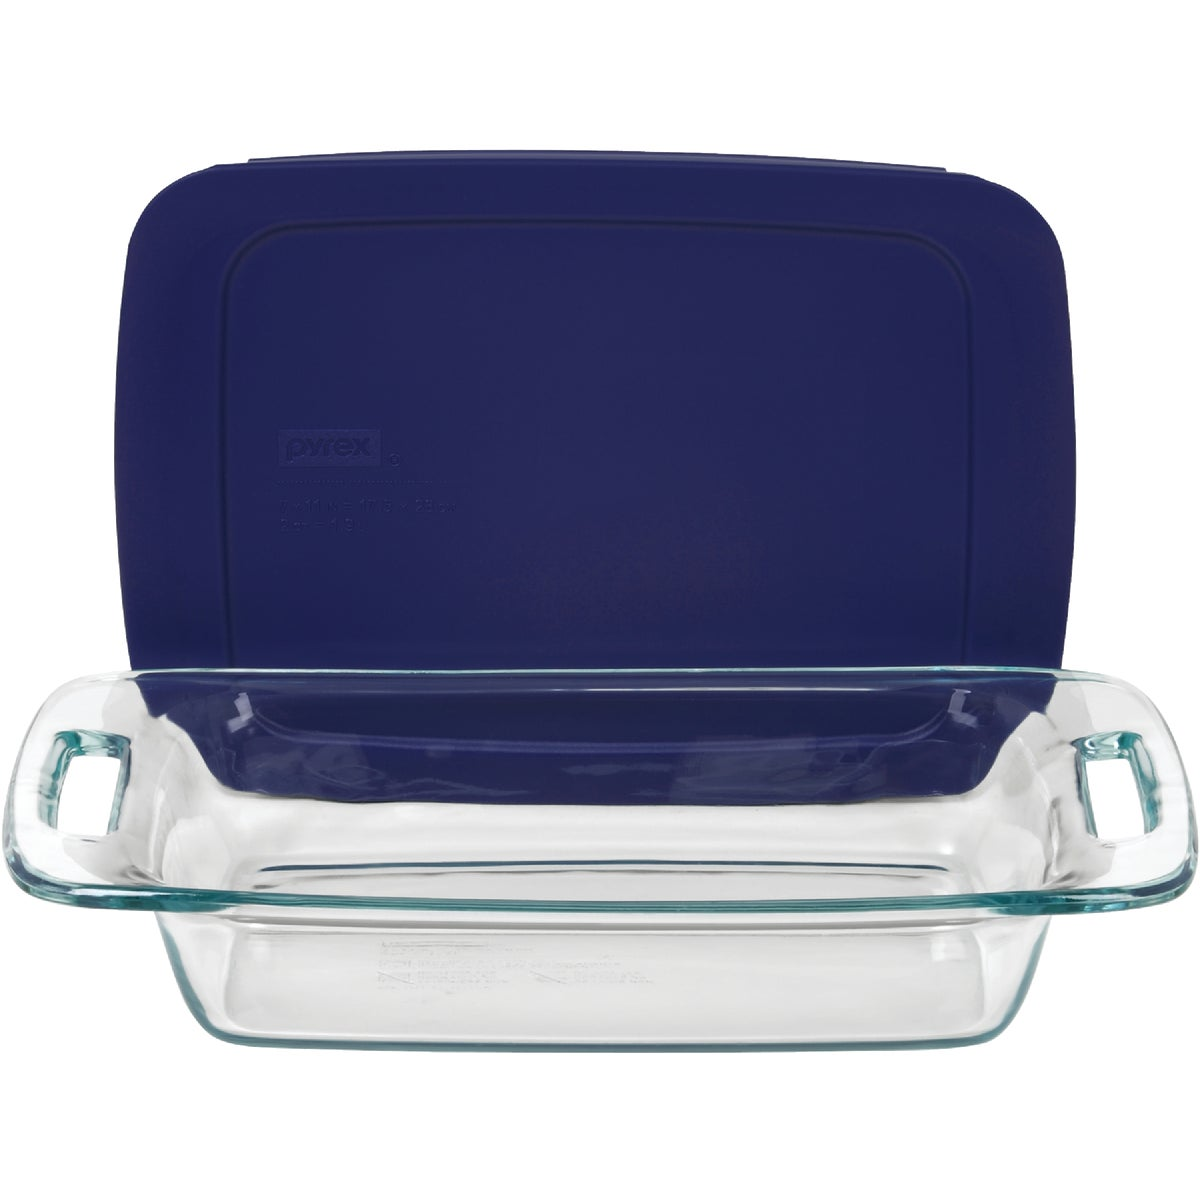 PYREX 2QT OB BAKING DISH - 1085802 by World Kitchen